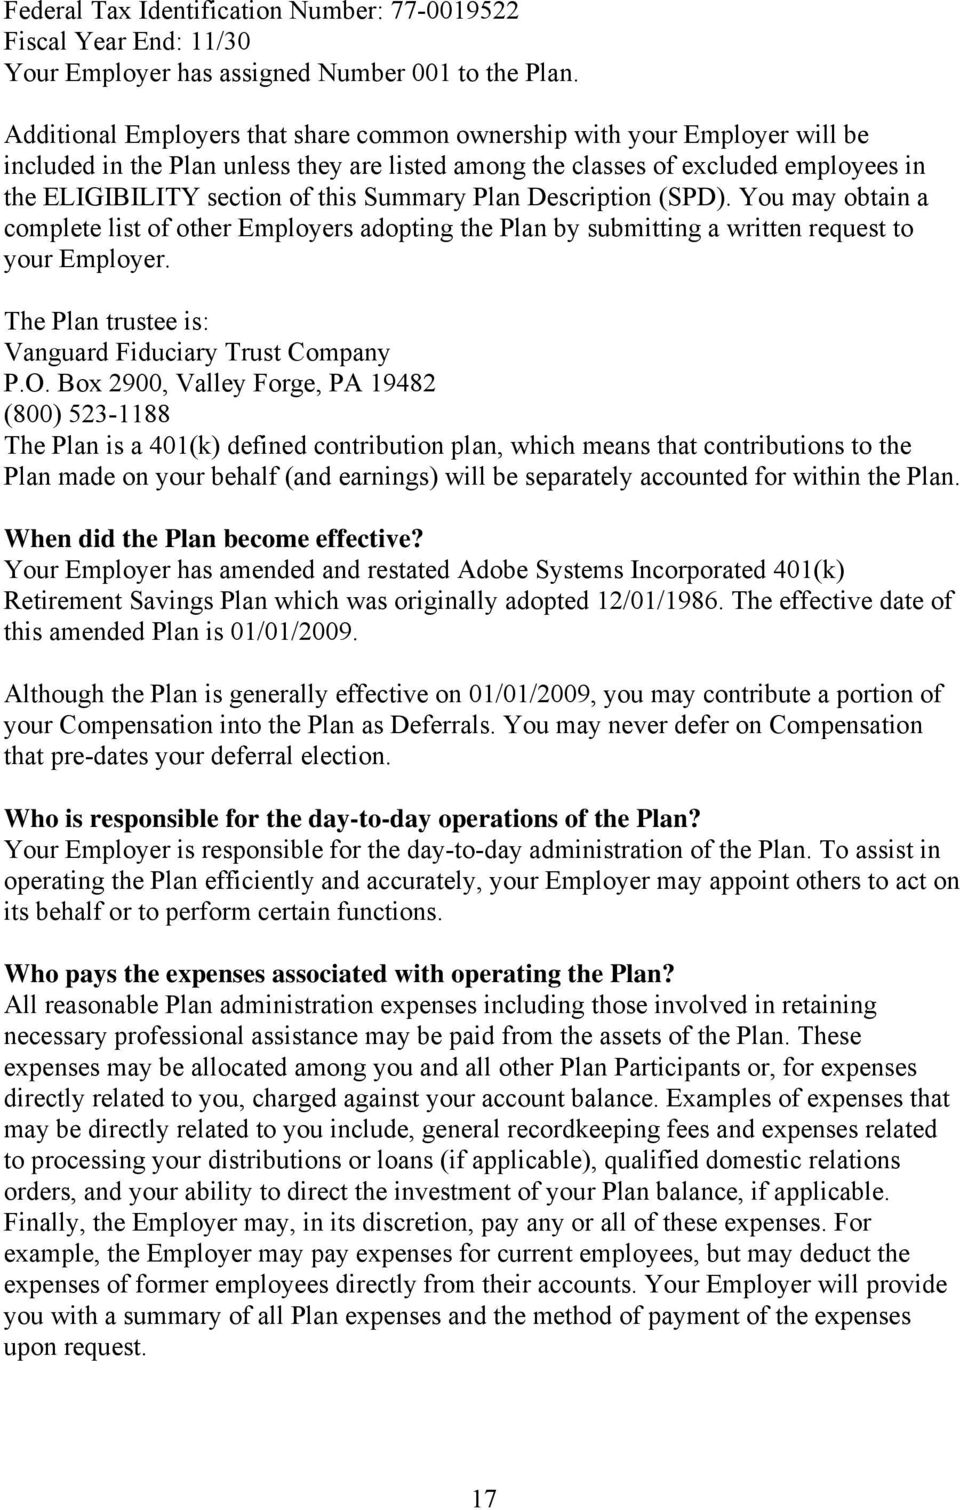 Summary Plan Description (SPD). You may obtain a complete list of other Employers adopting the Plan by submitting a written request to your Employer.